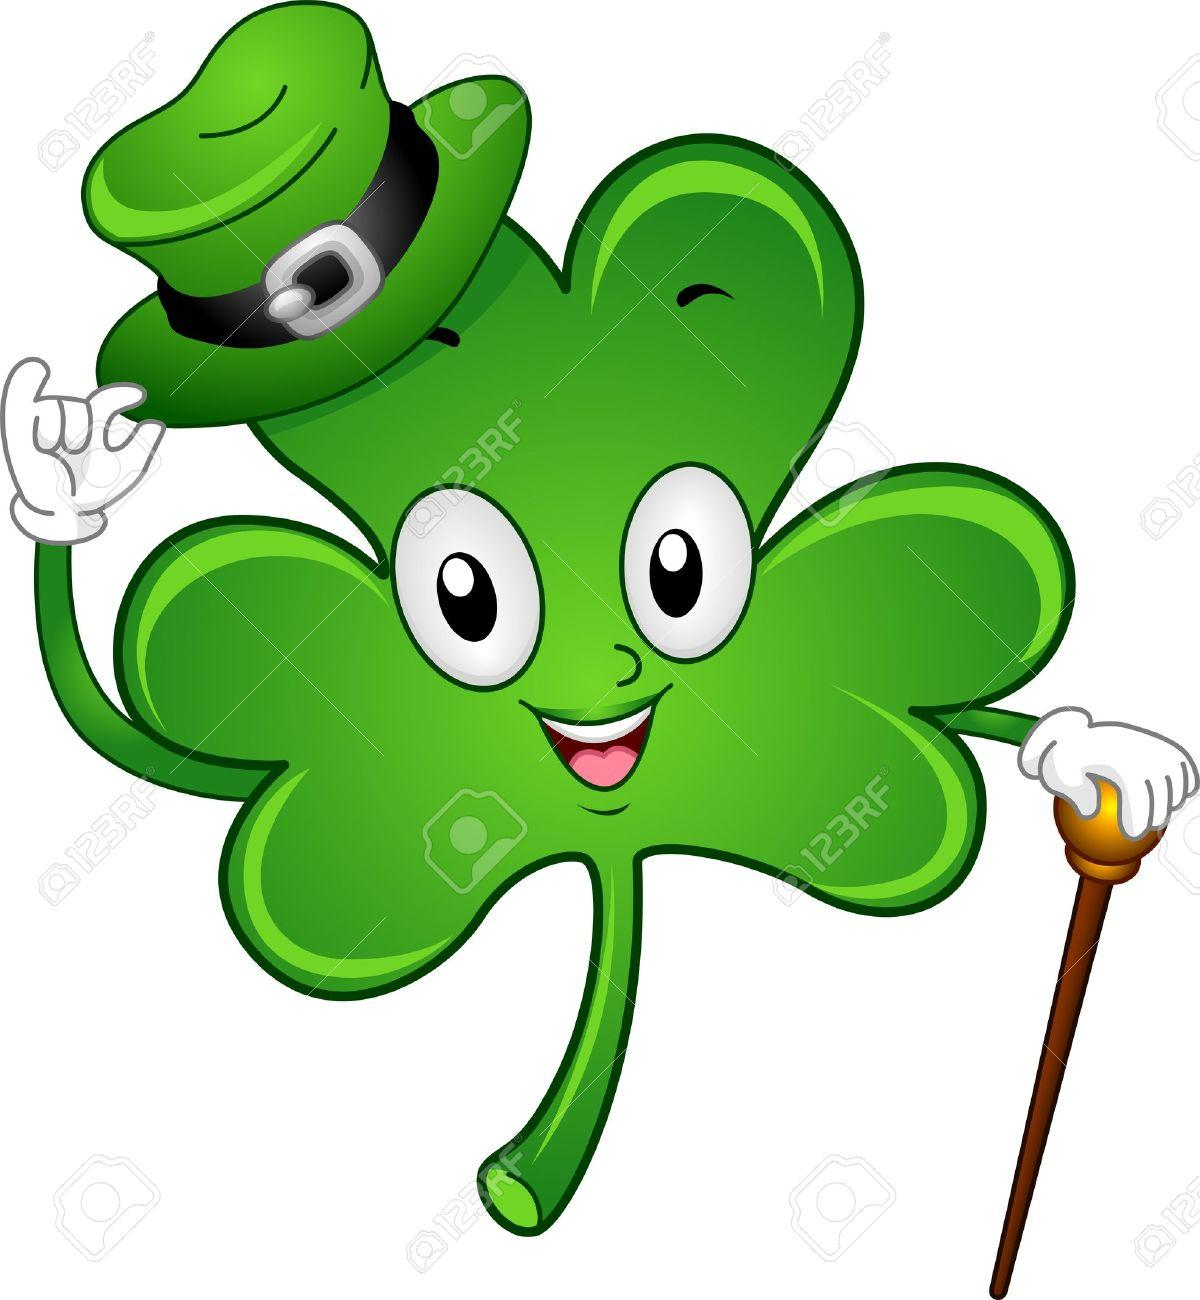 Lucky charms clipart.